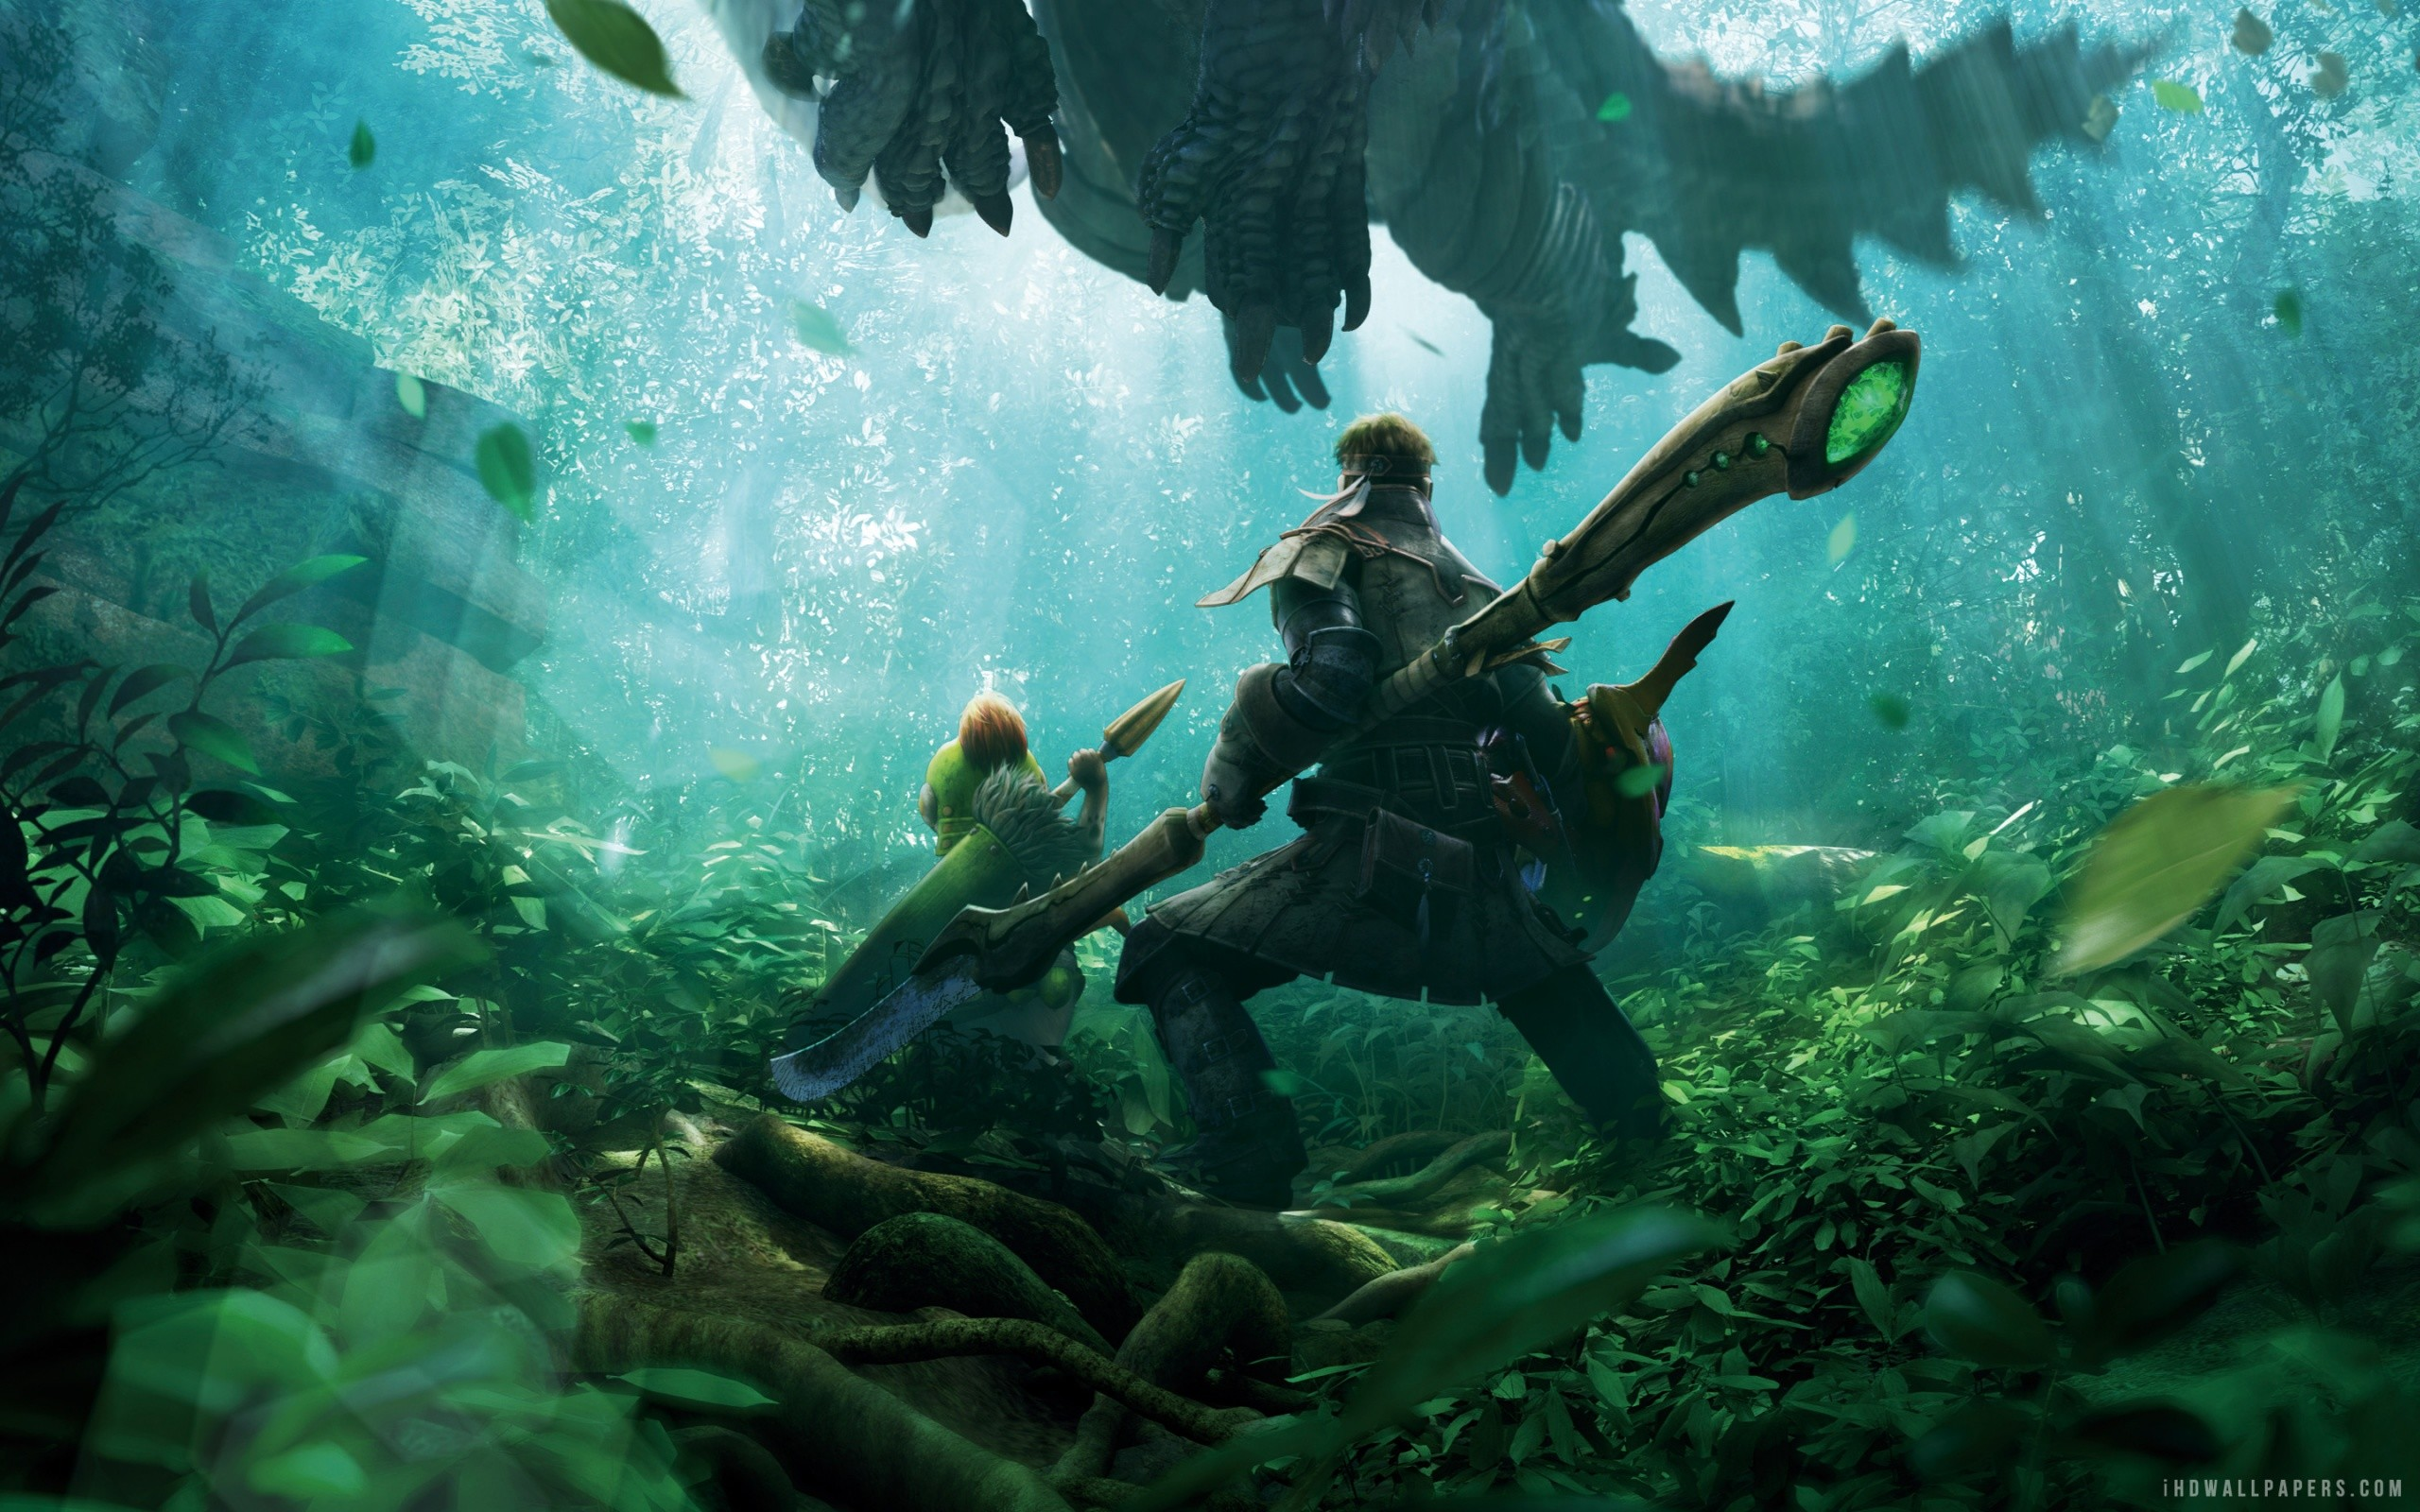 Monster Hunter HD Wallpapers Backgrounds Wallpaper | HD Wallpapers |  Pinterest | Monster hunter, Hd wallpaper and Wallpaper